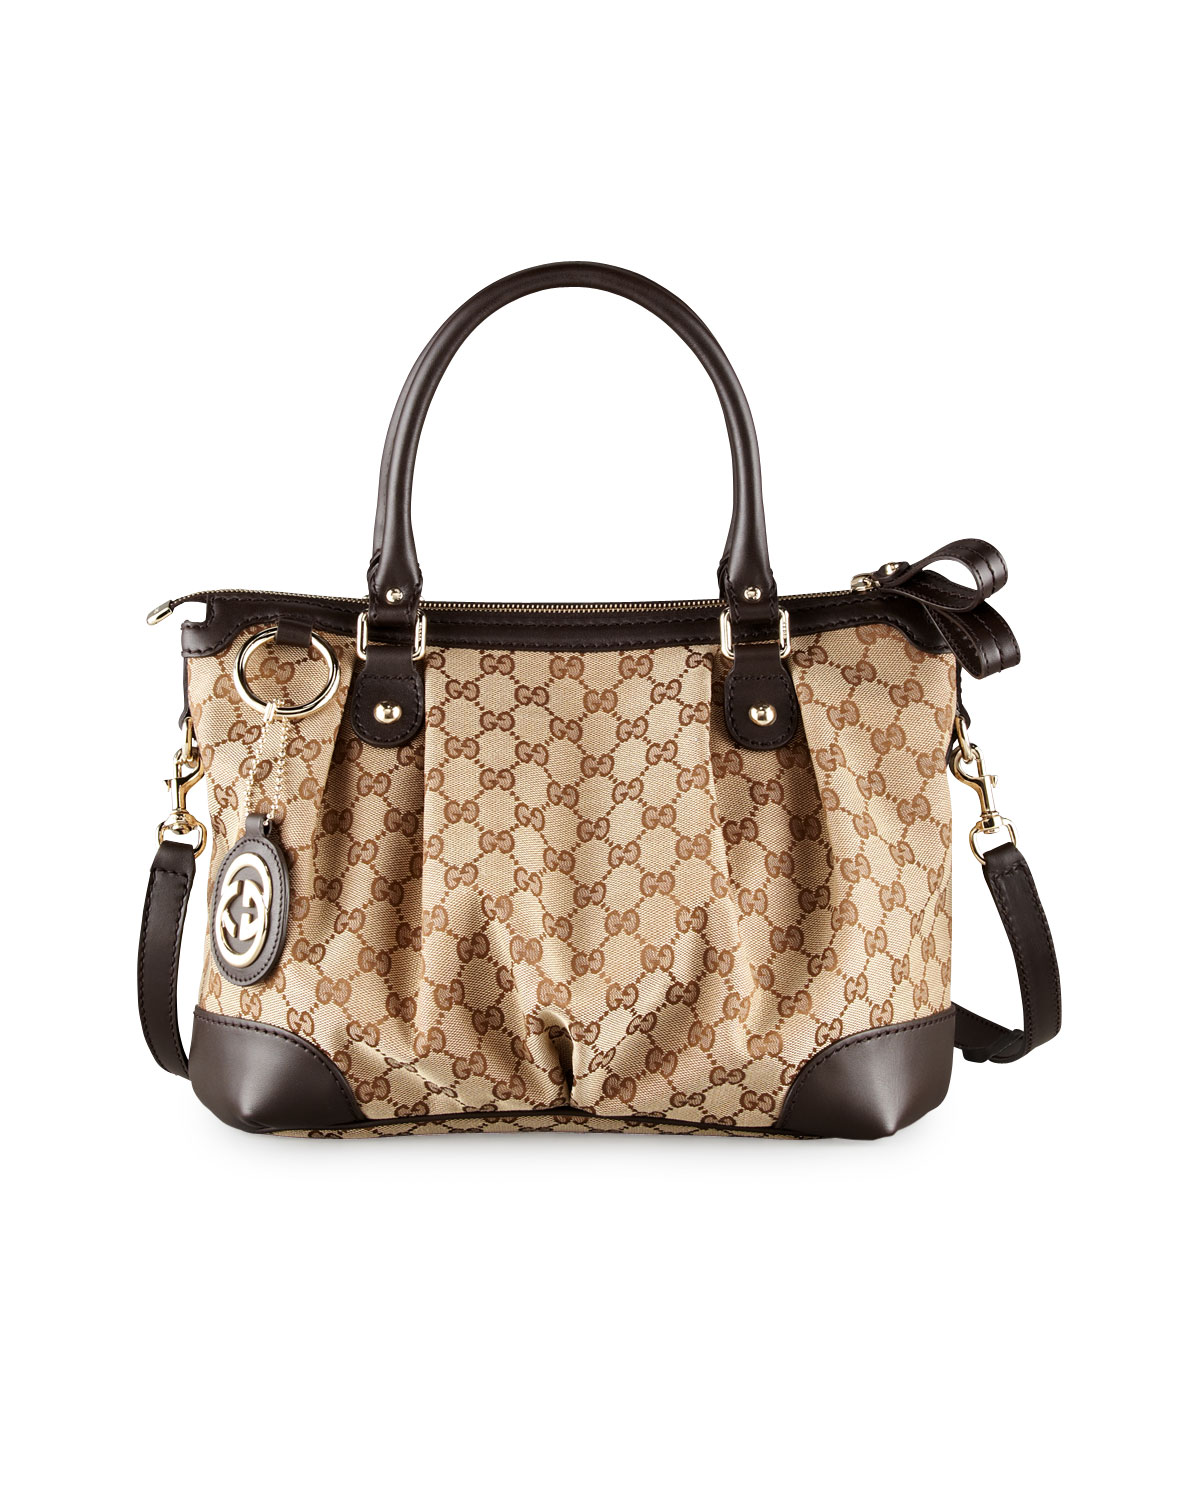 4626545b0a5d Gucci Sukey Original GG Canvas Top-Handle Bag, Cocoa | Neiman Marcus